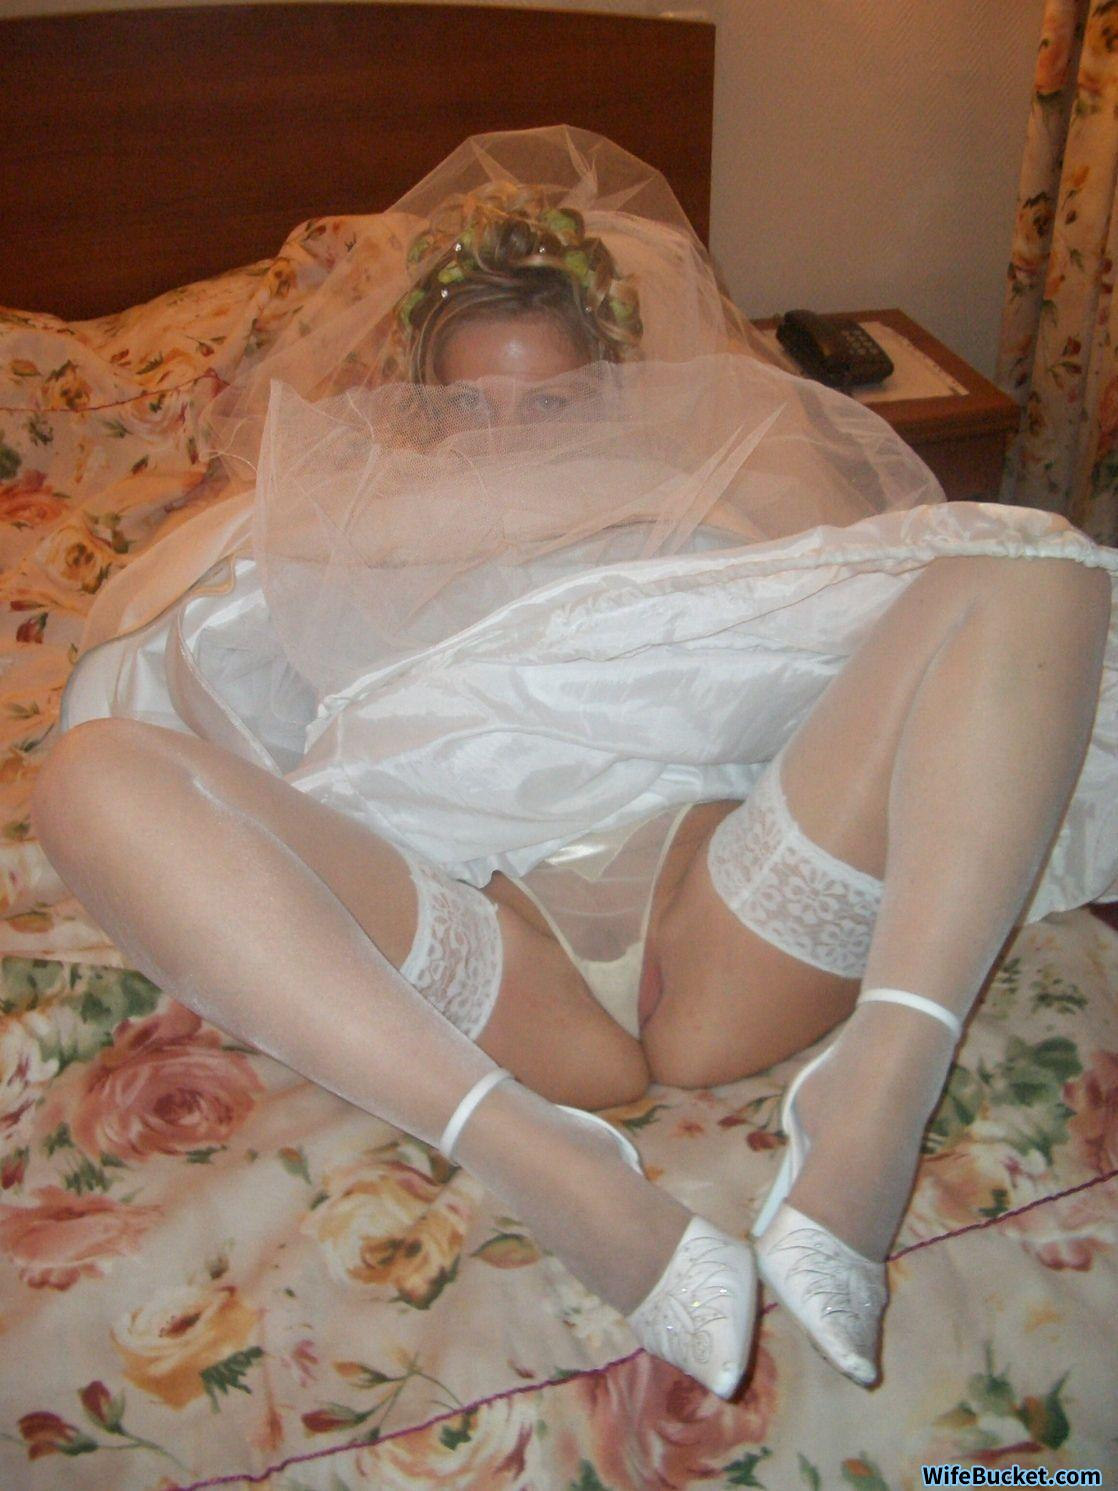 Can suggest Bra bride sluts think